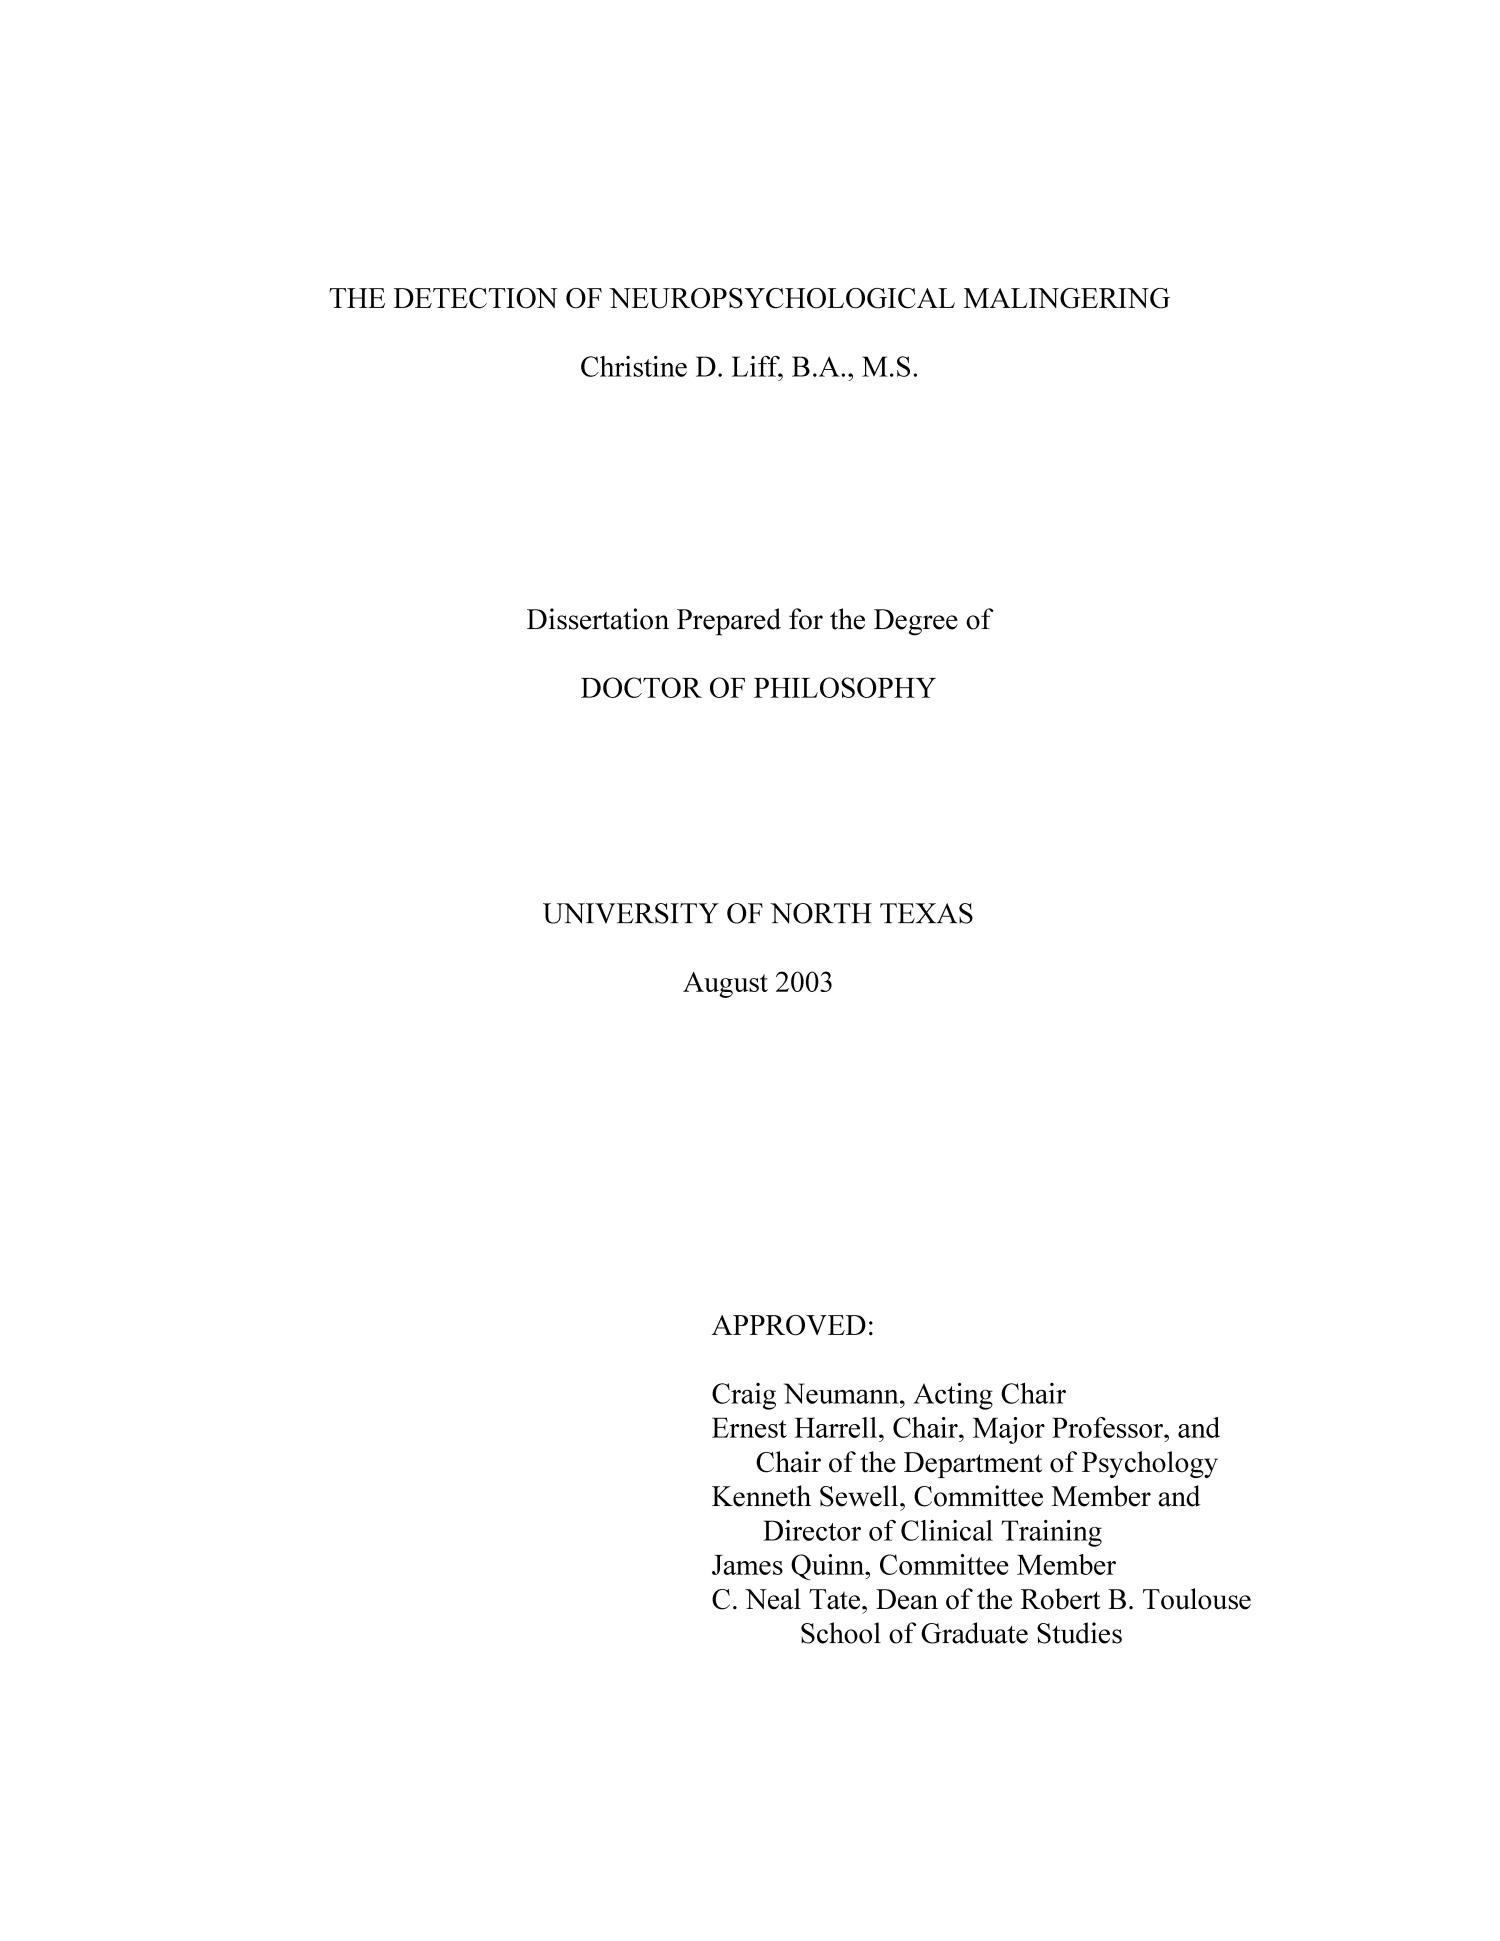 online thesis digital library The networked digital library of theses and dissertations (ndltd) union catalog contains more than a million records of electronic theses and dissertations from the early 1900s to the present.